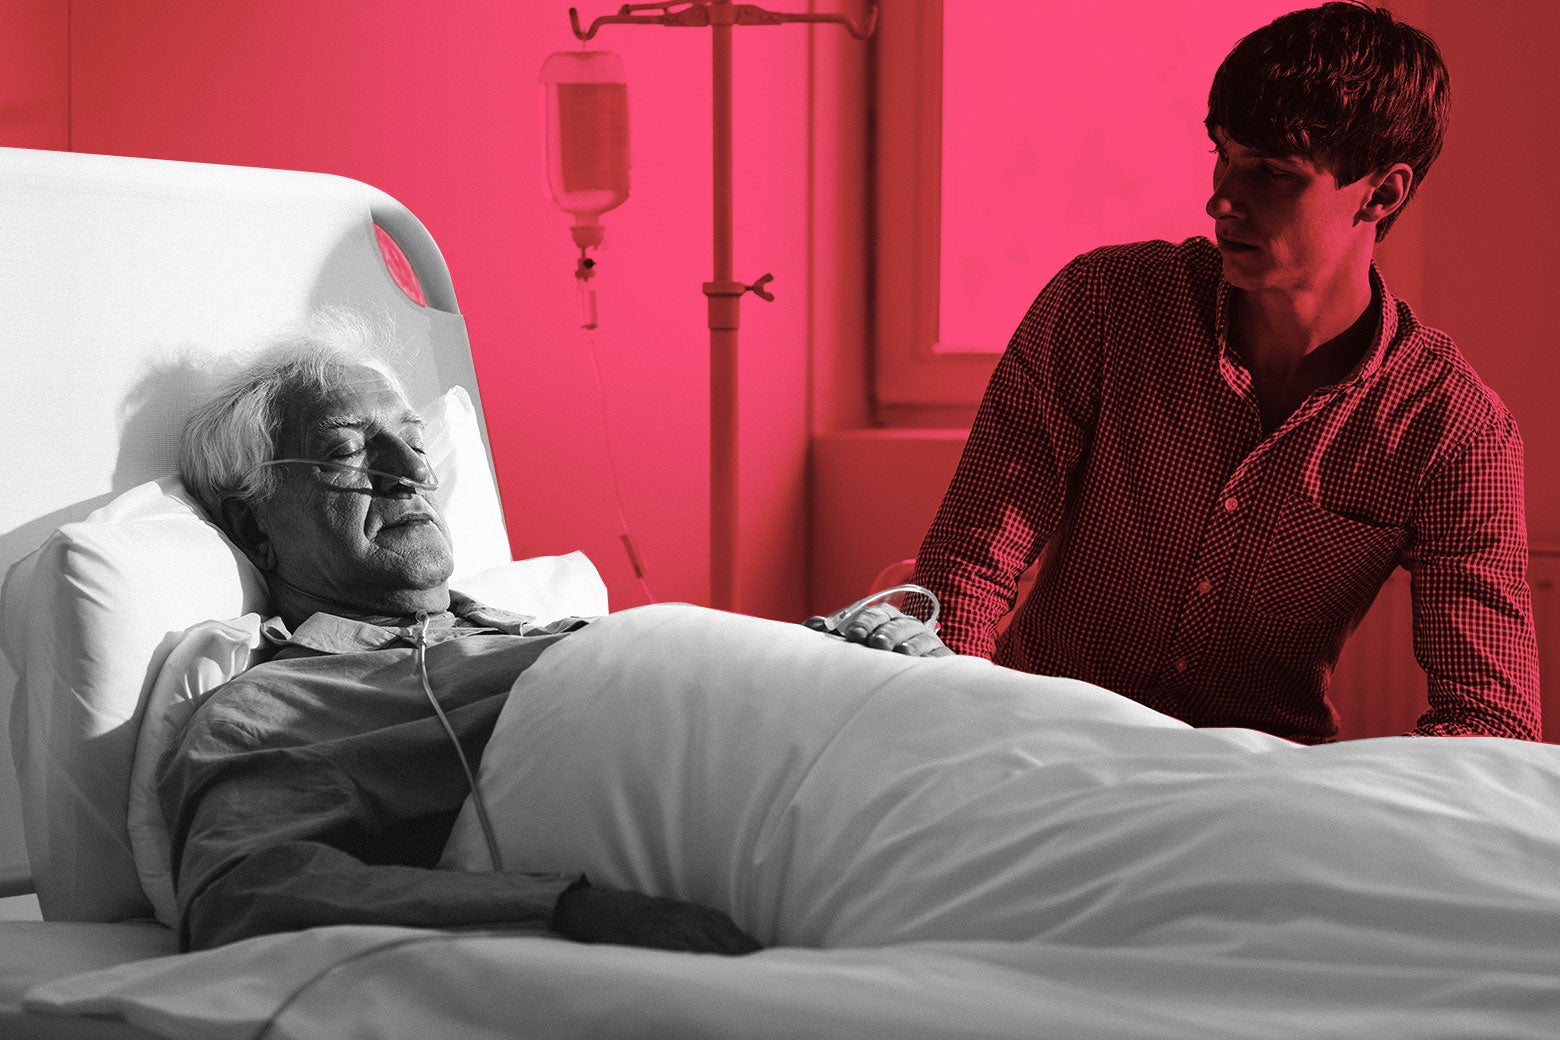 A son at his dying father's bedside.